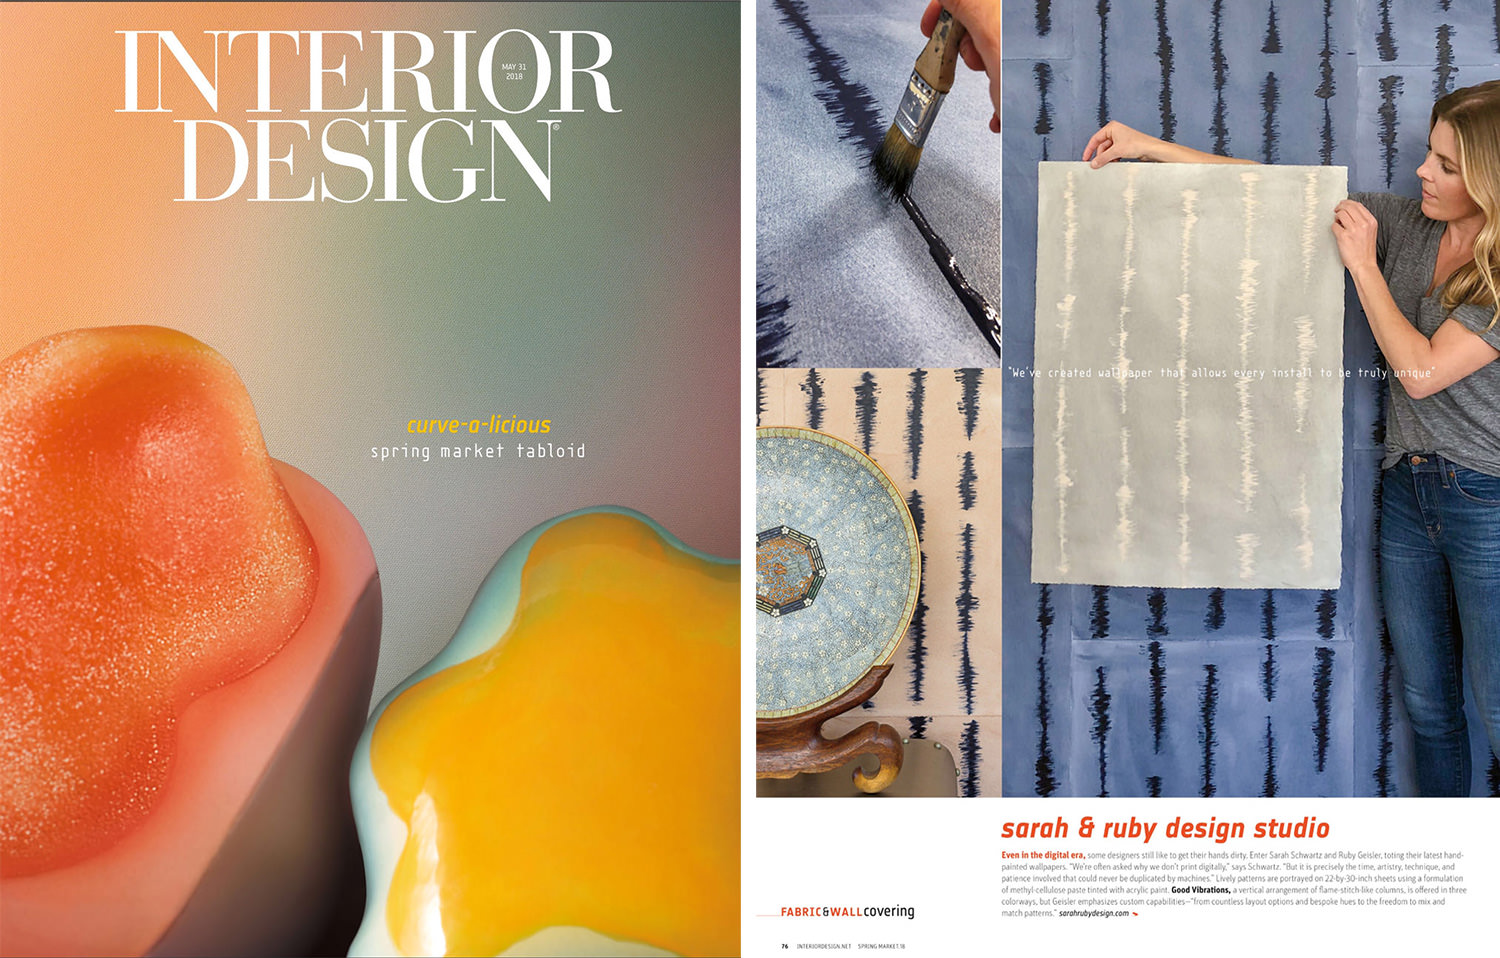 Good Vibrations handpainted sheet wallpaper is shown in Interior Design magazine.